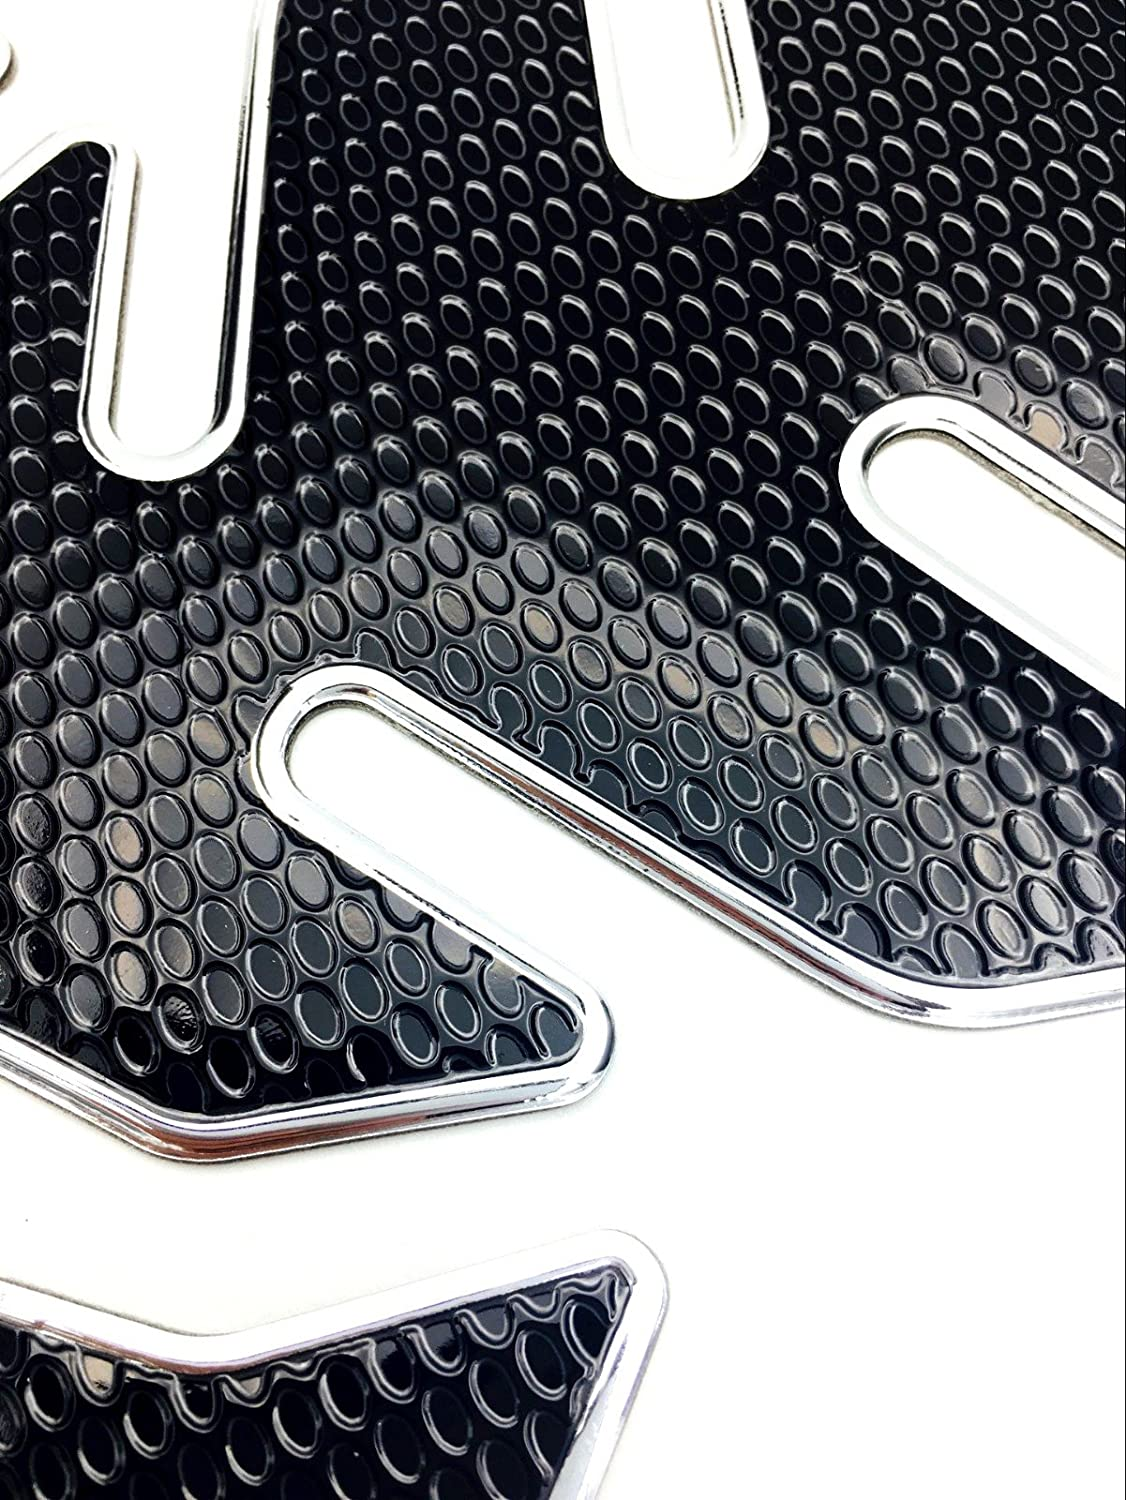 C05# Niree Motorcycle Tank Gas Metallic Luster Protector Pad Sticker Decal for BMW F650GS BMW F800GS//Adventure F800R F800GT F800ST F800S